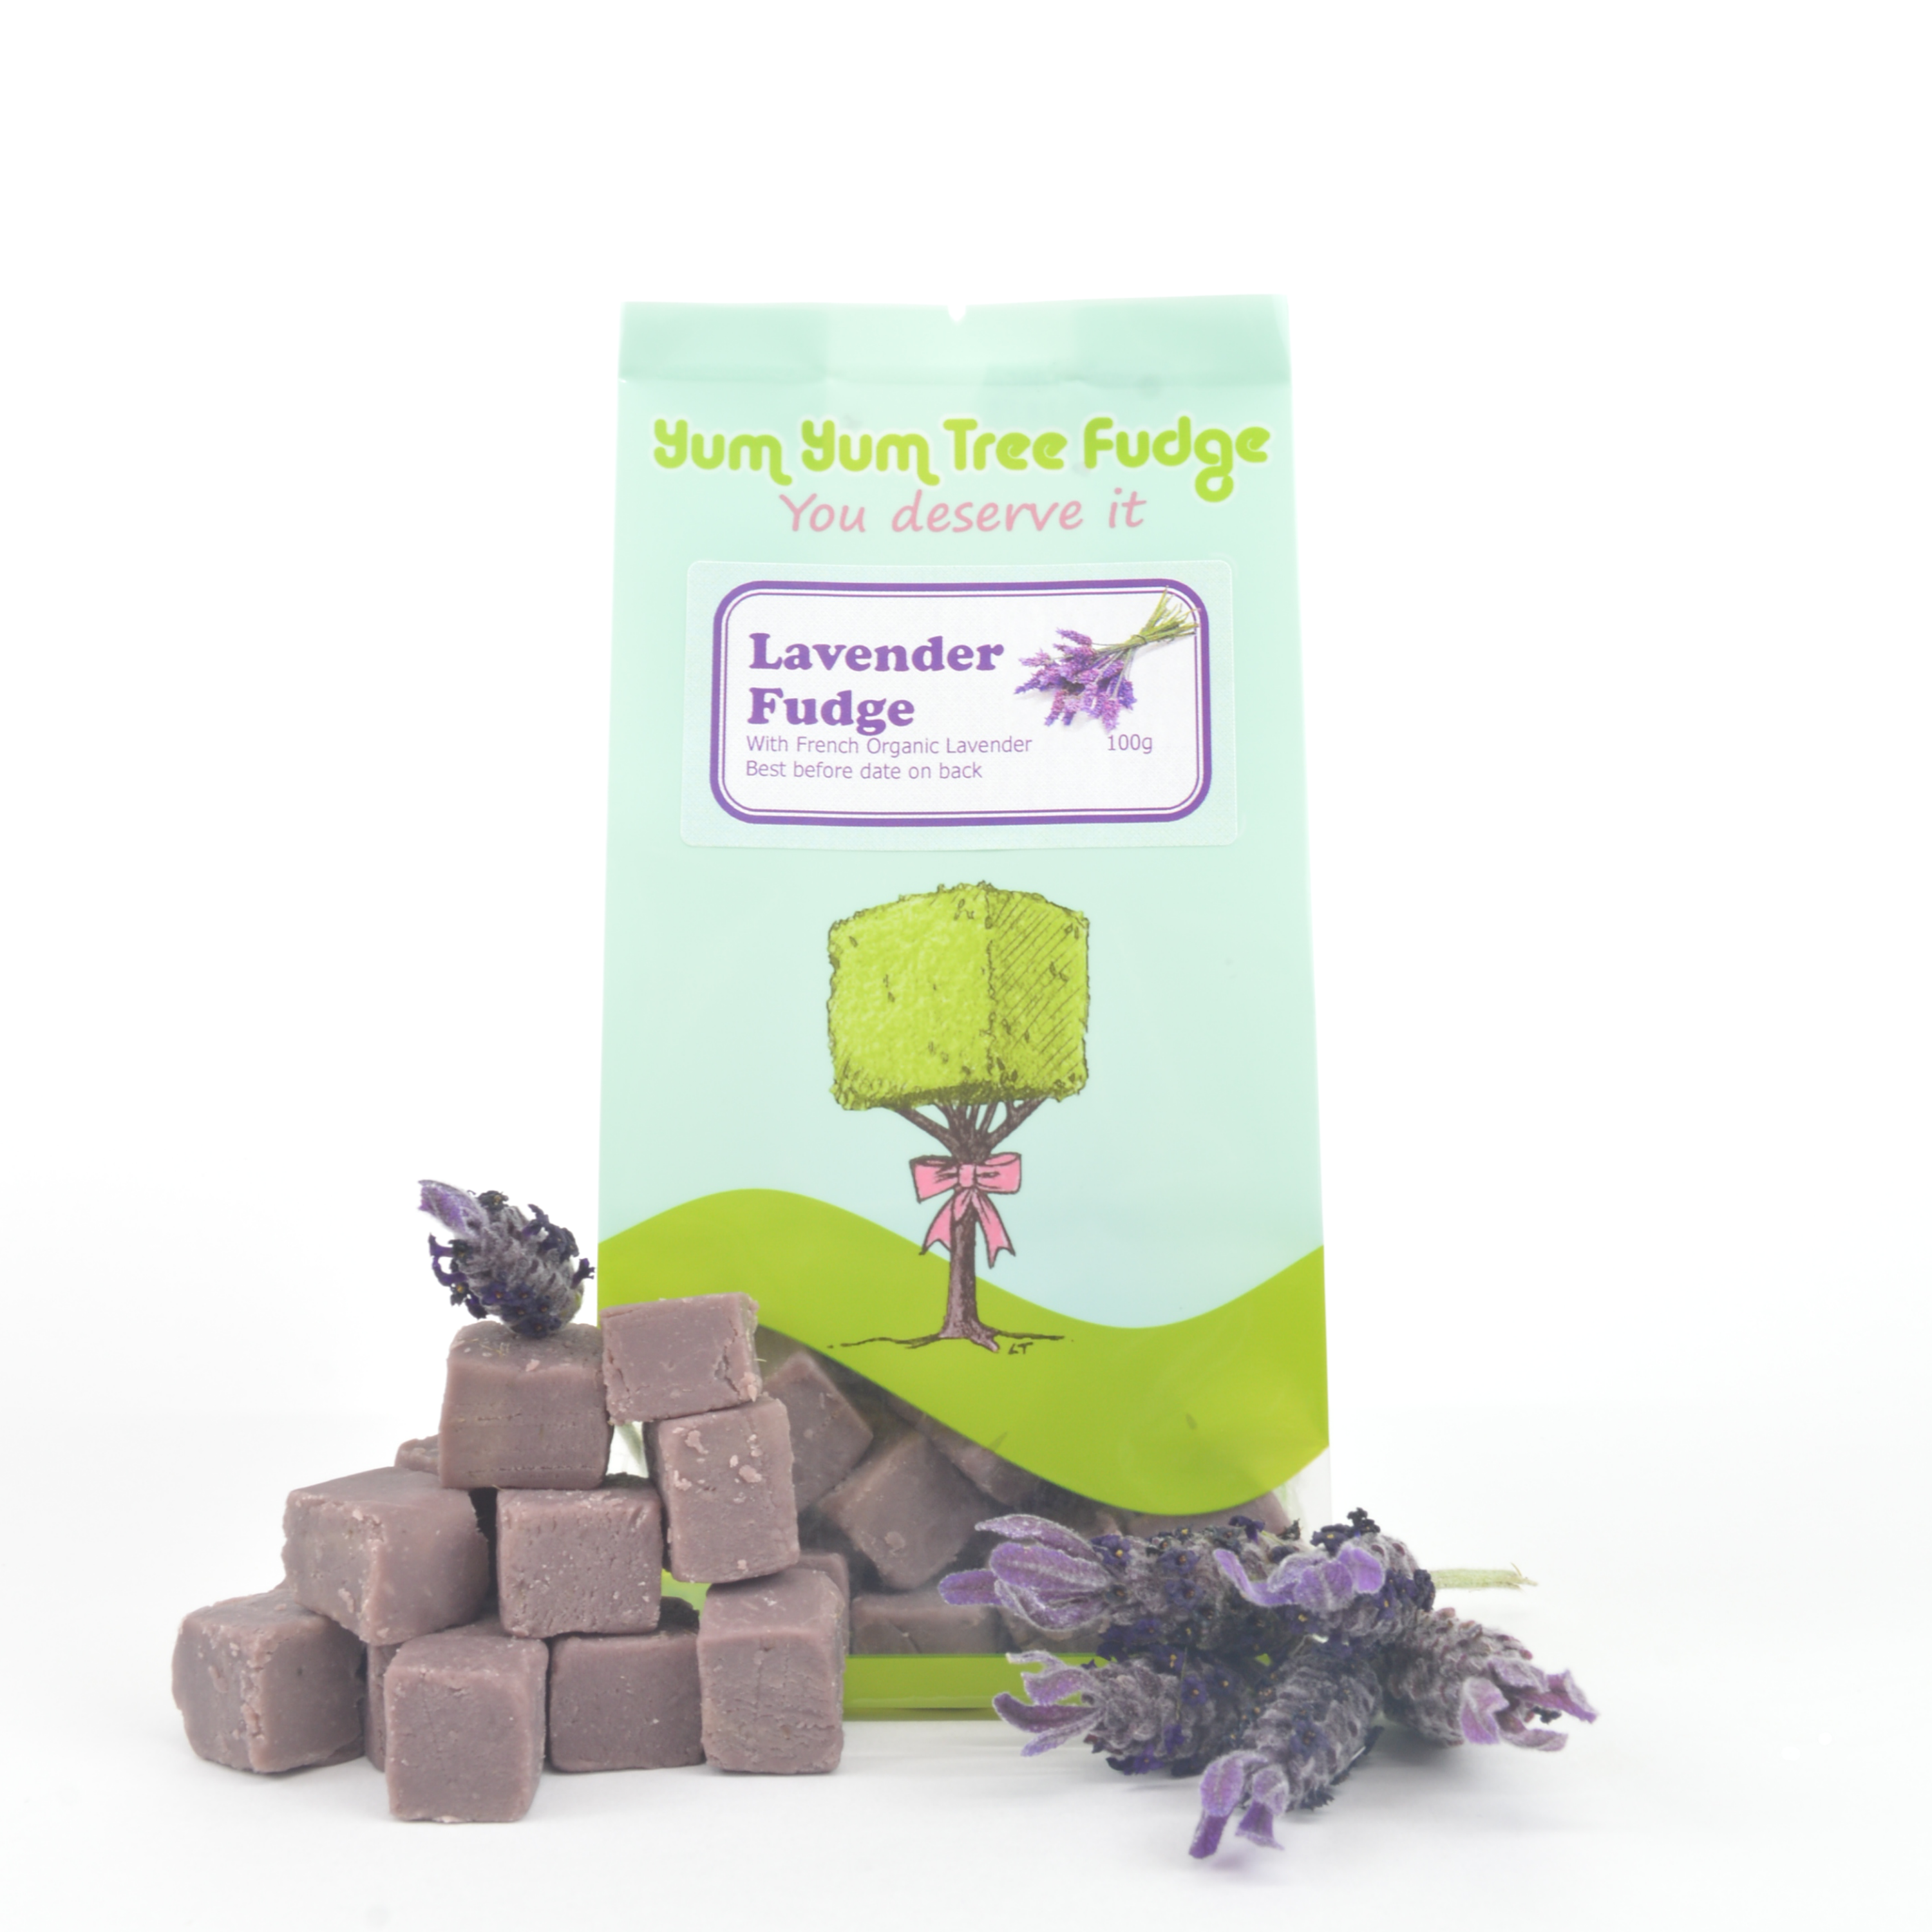 Lavender fudge 100g Yum Yum Tree Fudge